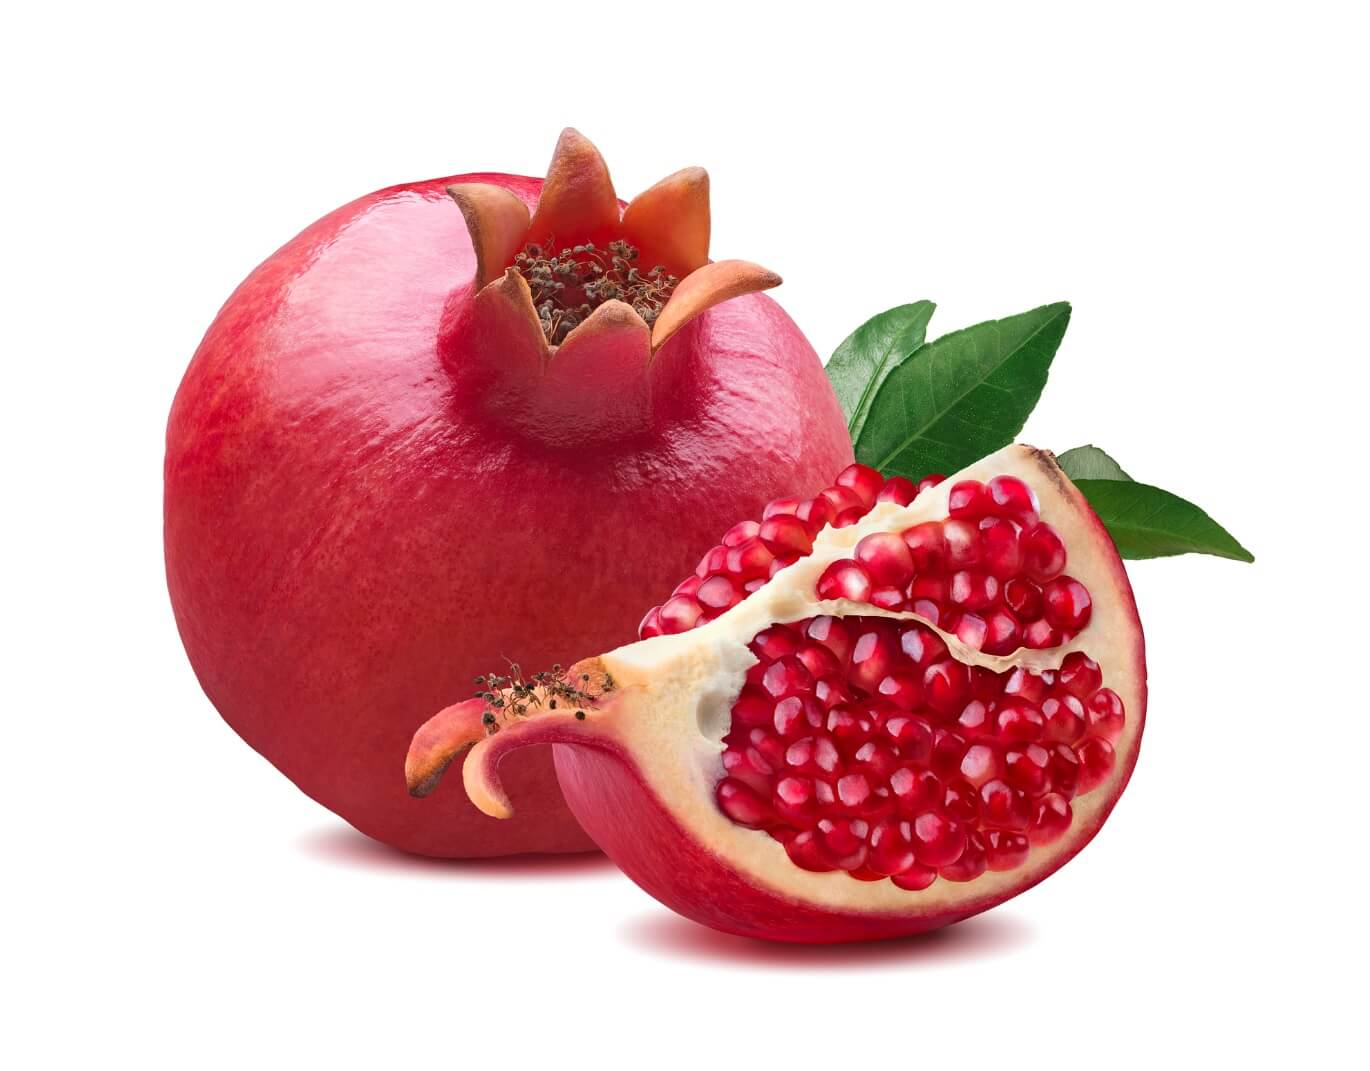 Pomegranate - Promotes Youthful and Vibrant-Looking Skin